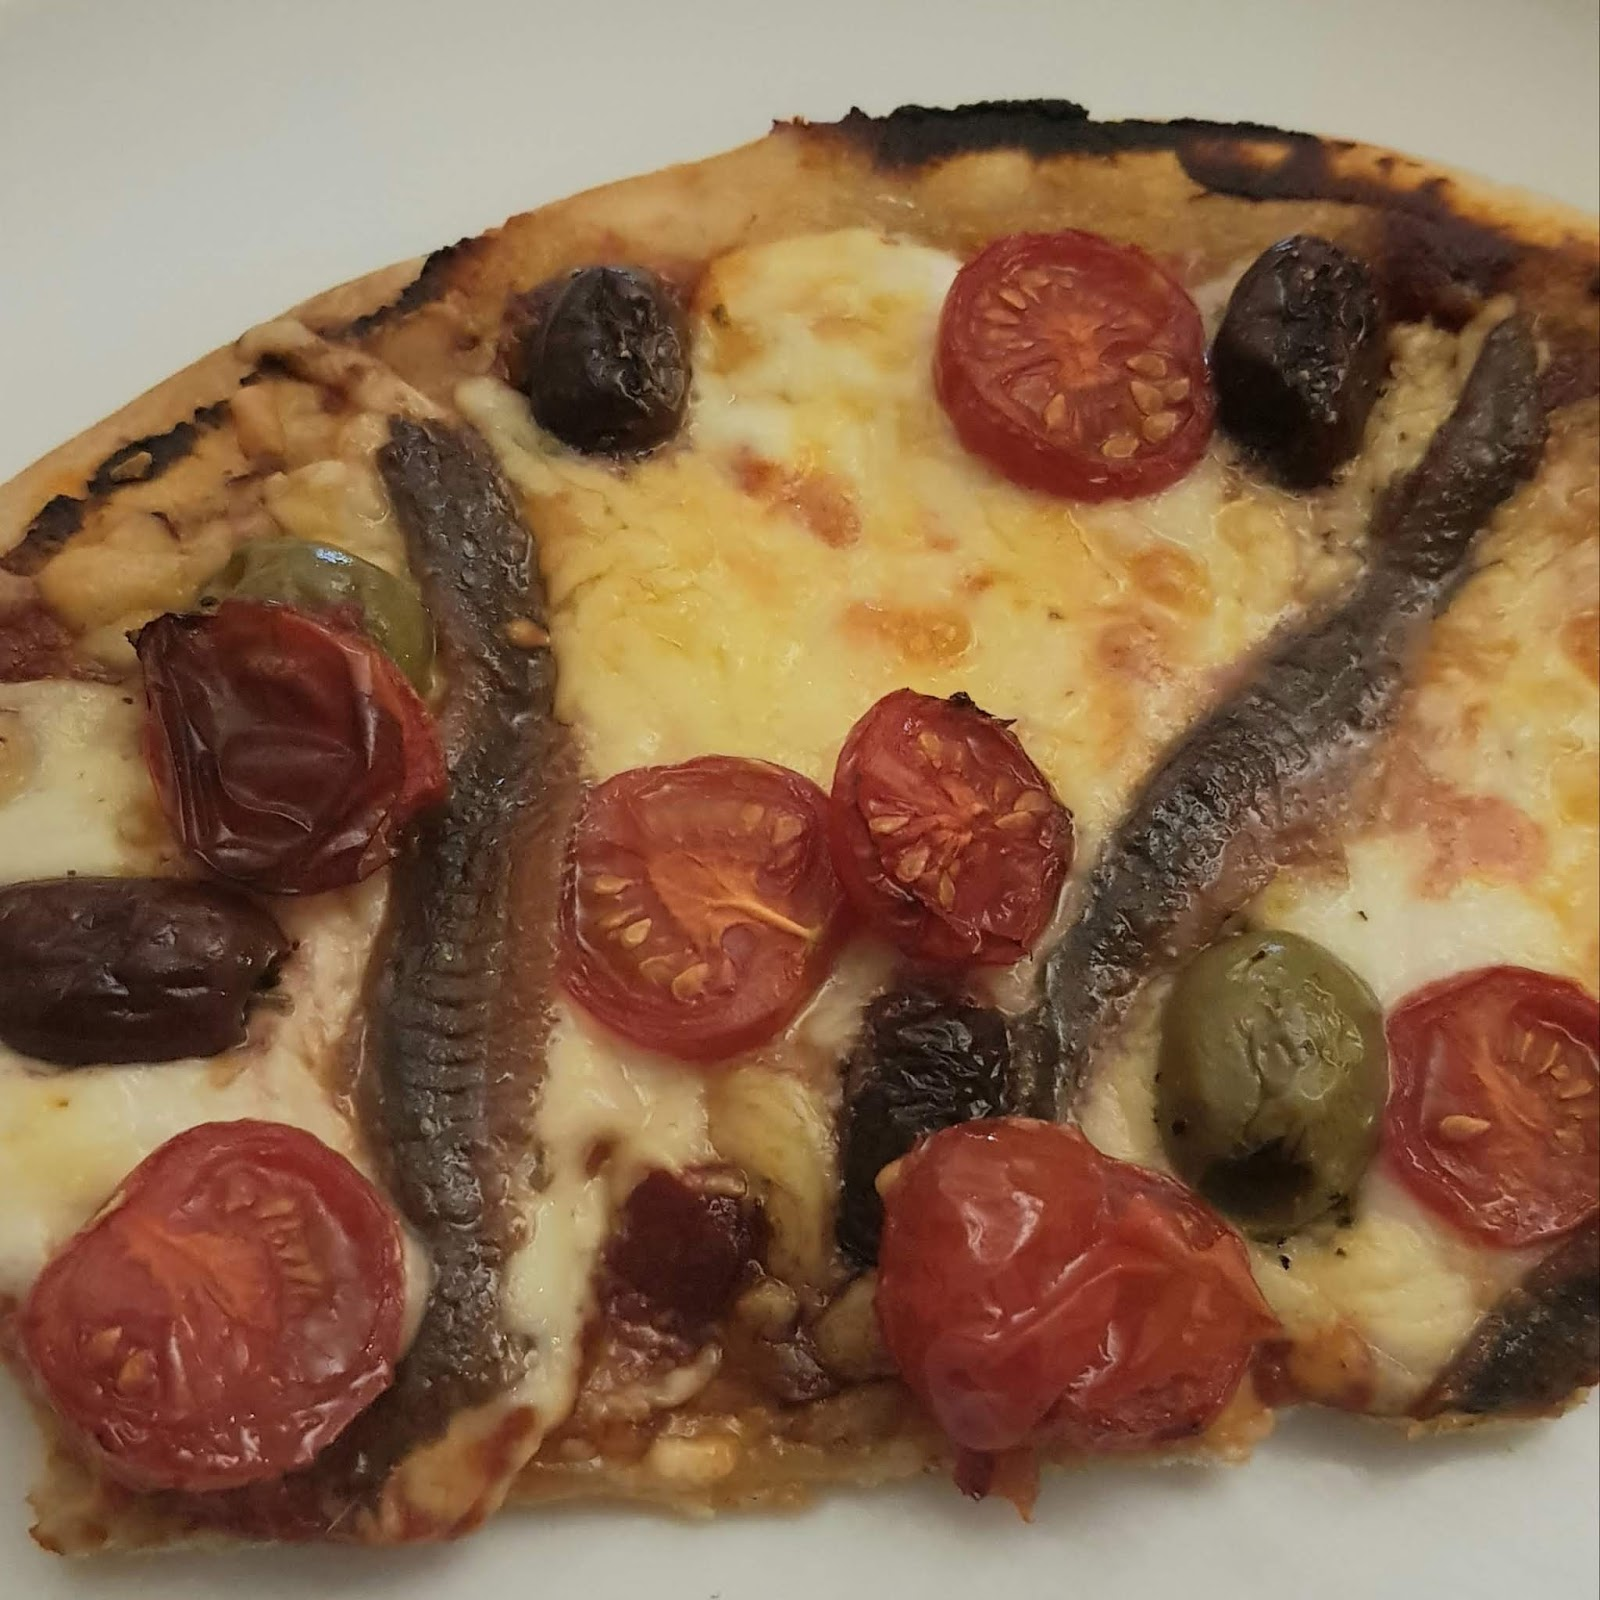 Cauliflower base pizza with mozzarella, anchovies and tomatoes